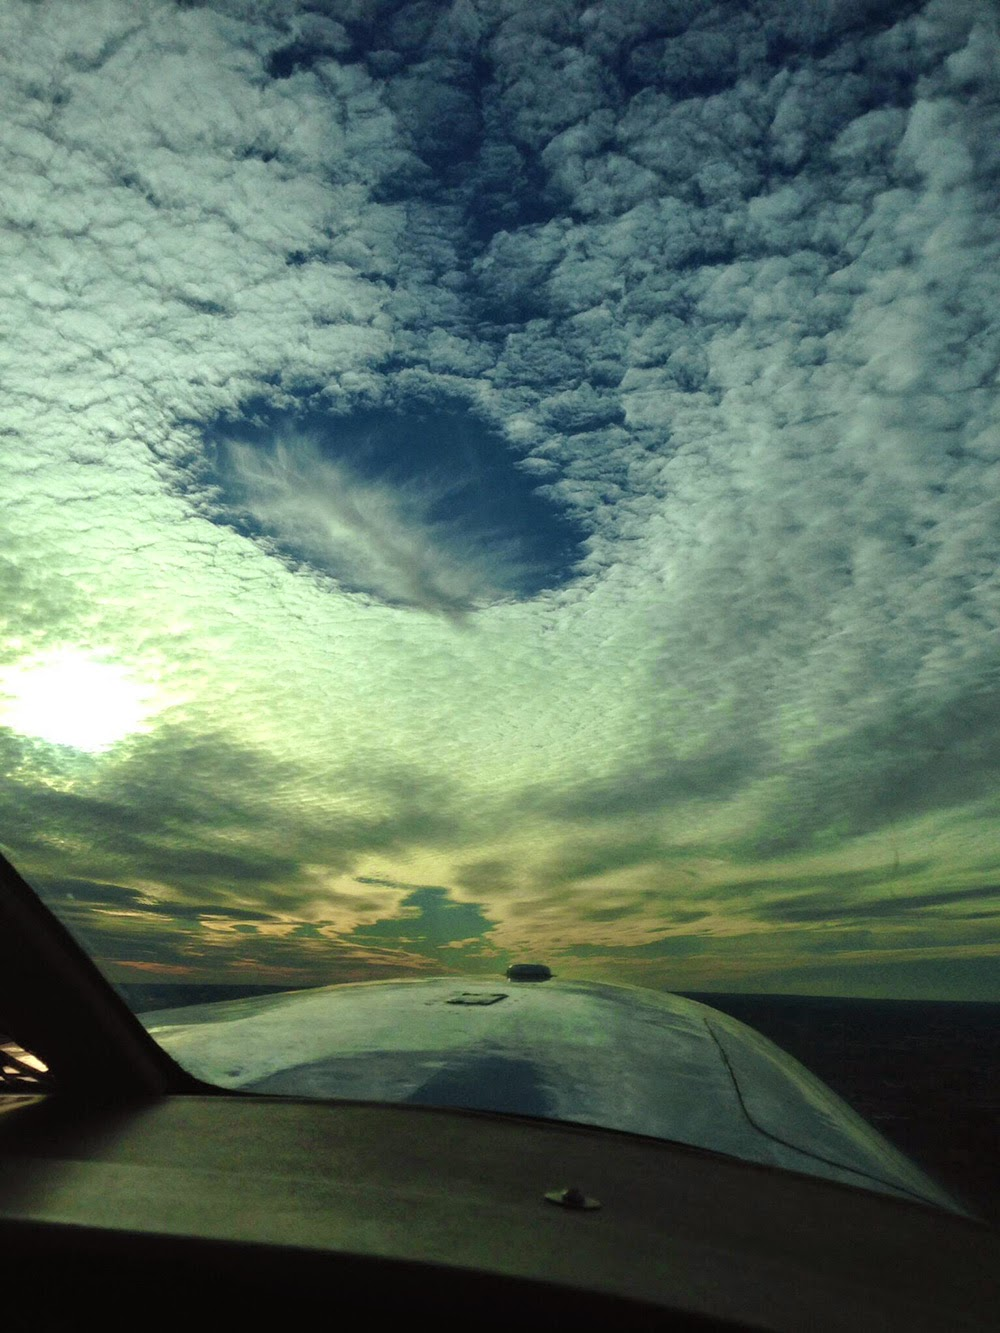 Happy Friday! Who's flying this weekend? (Thanks to Brad Henshaw for sharing his photo!)